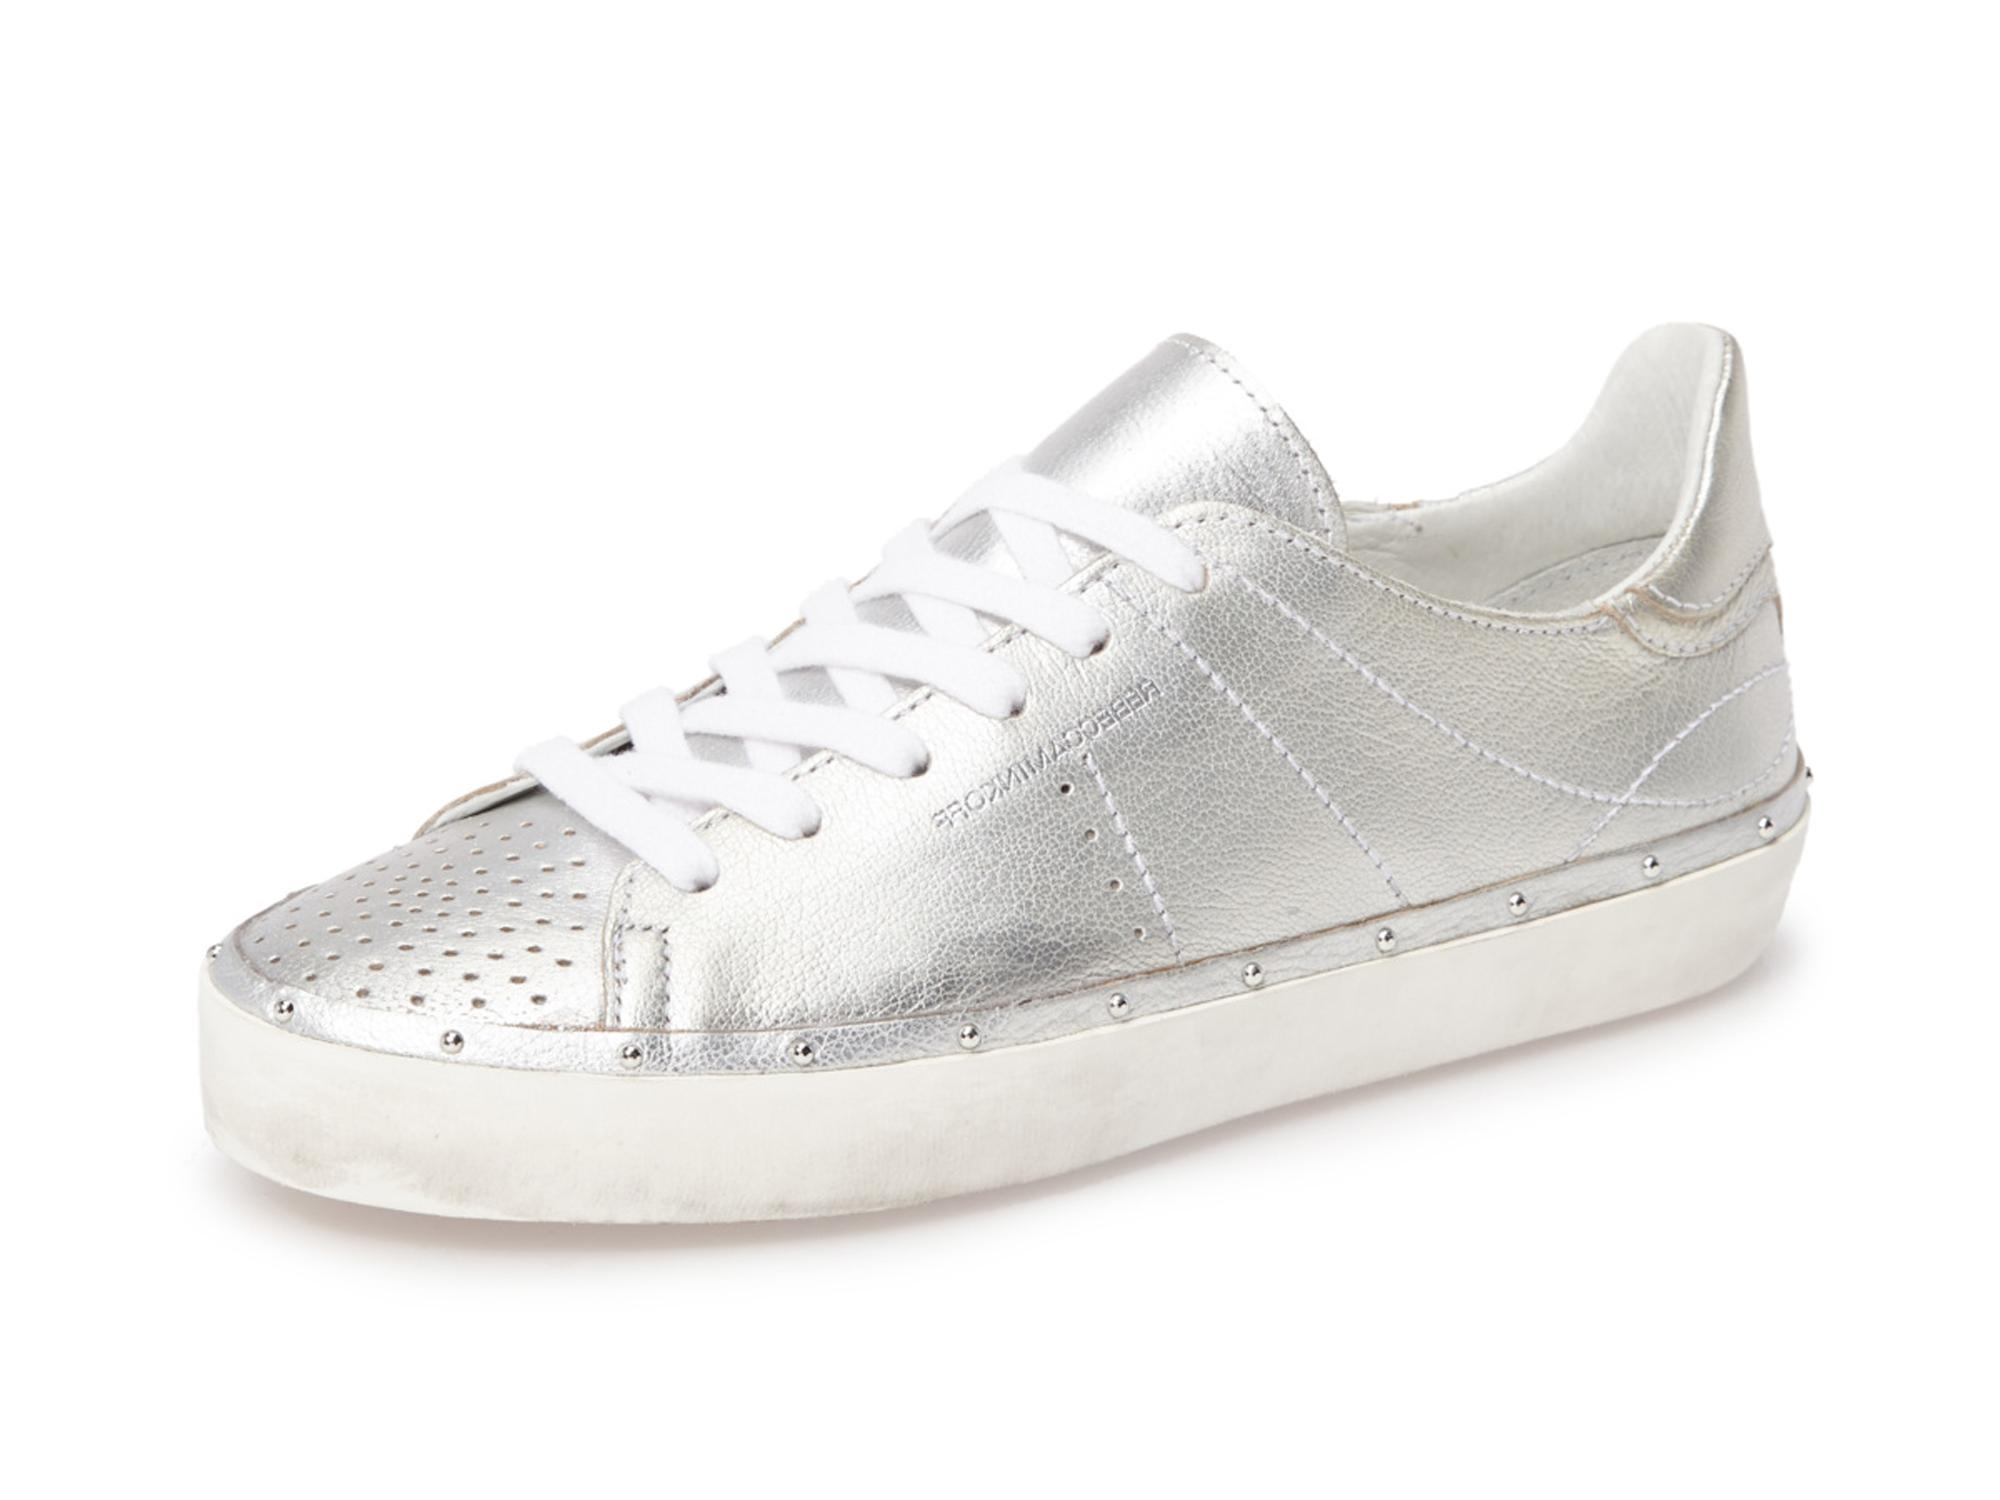 Rebecca Minkoff Studded Silver Michell Distressed Sole Studded Minkoff Sneakers Size US 7.5 Regular (M, B) 2962b7